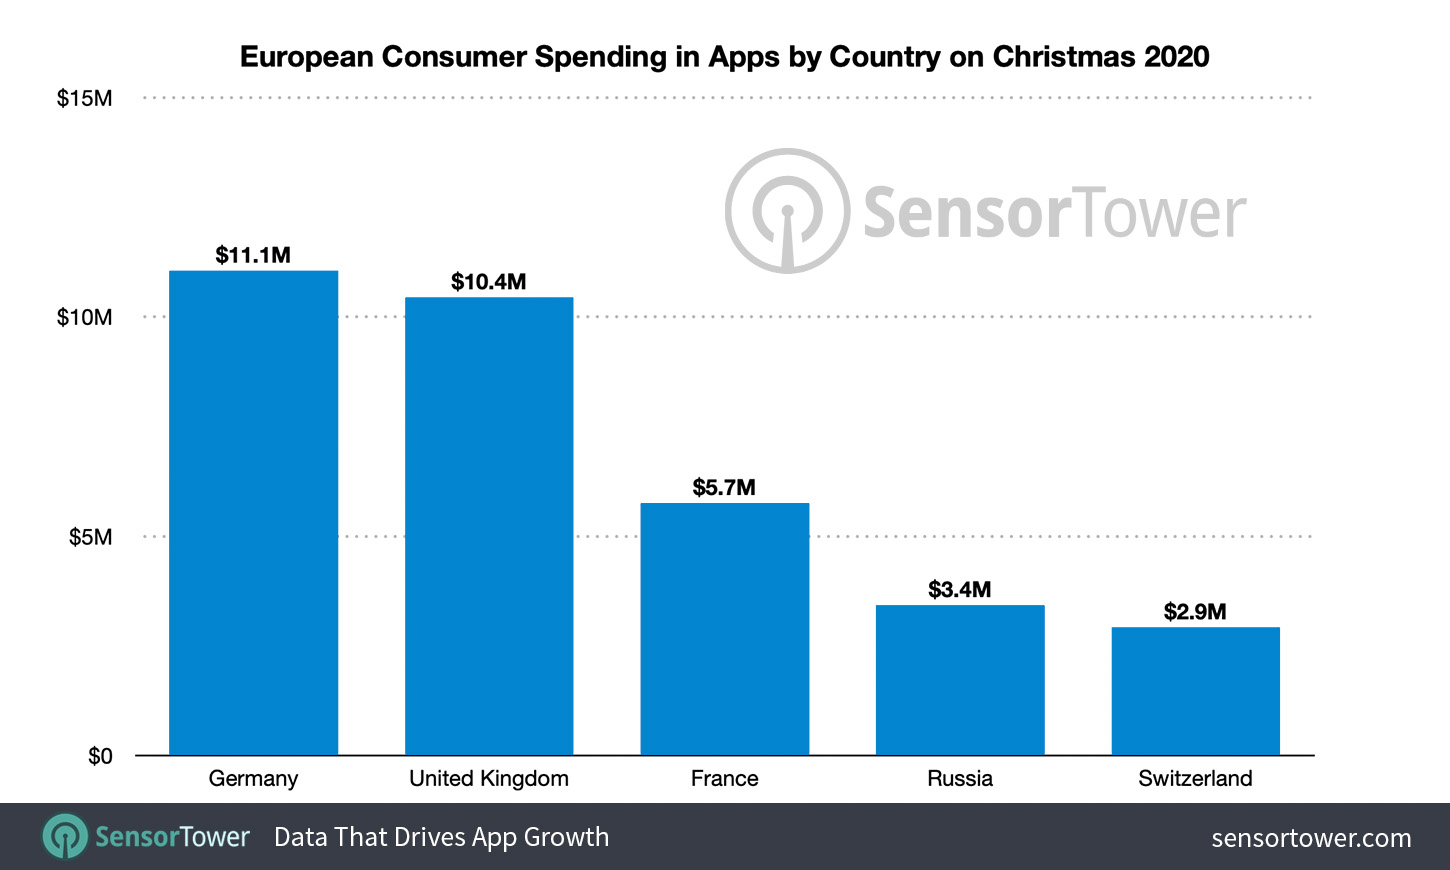 European Consumer Spending in Apps by Country on Christmas 2020